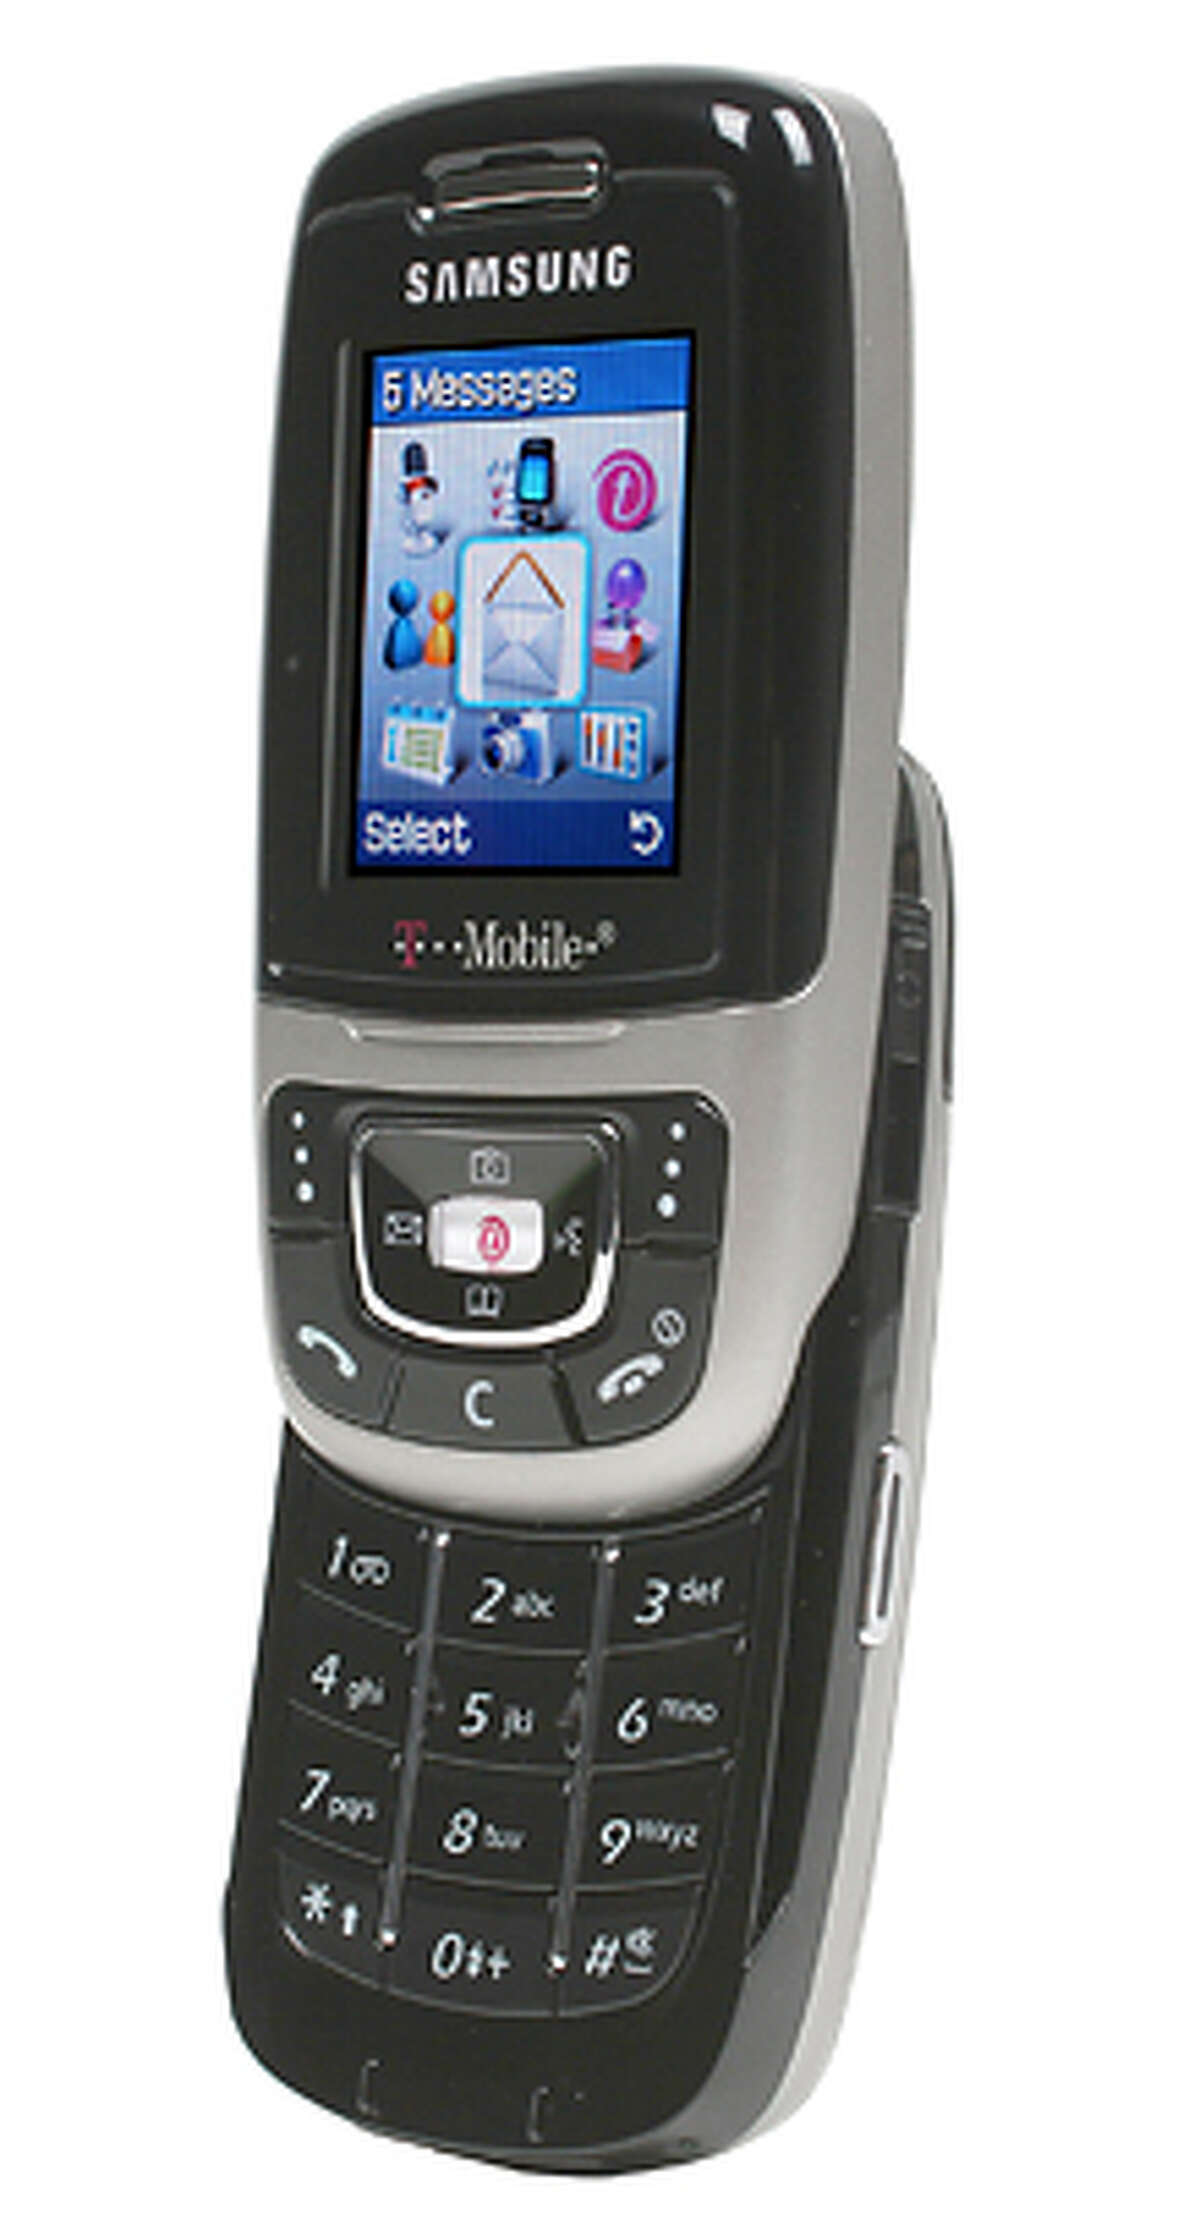 Samsung SGH-E635 Credit: CNET images for Chronicle gift guide